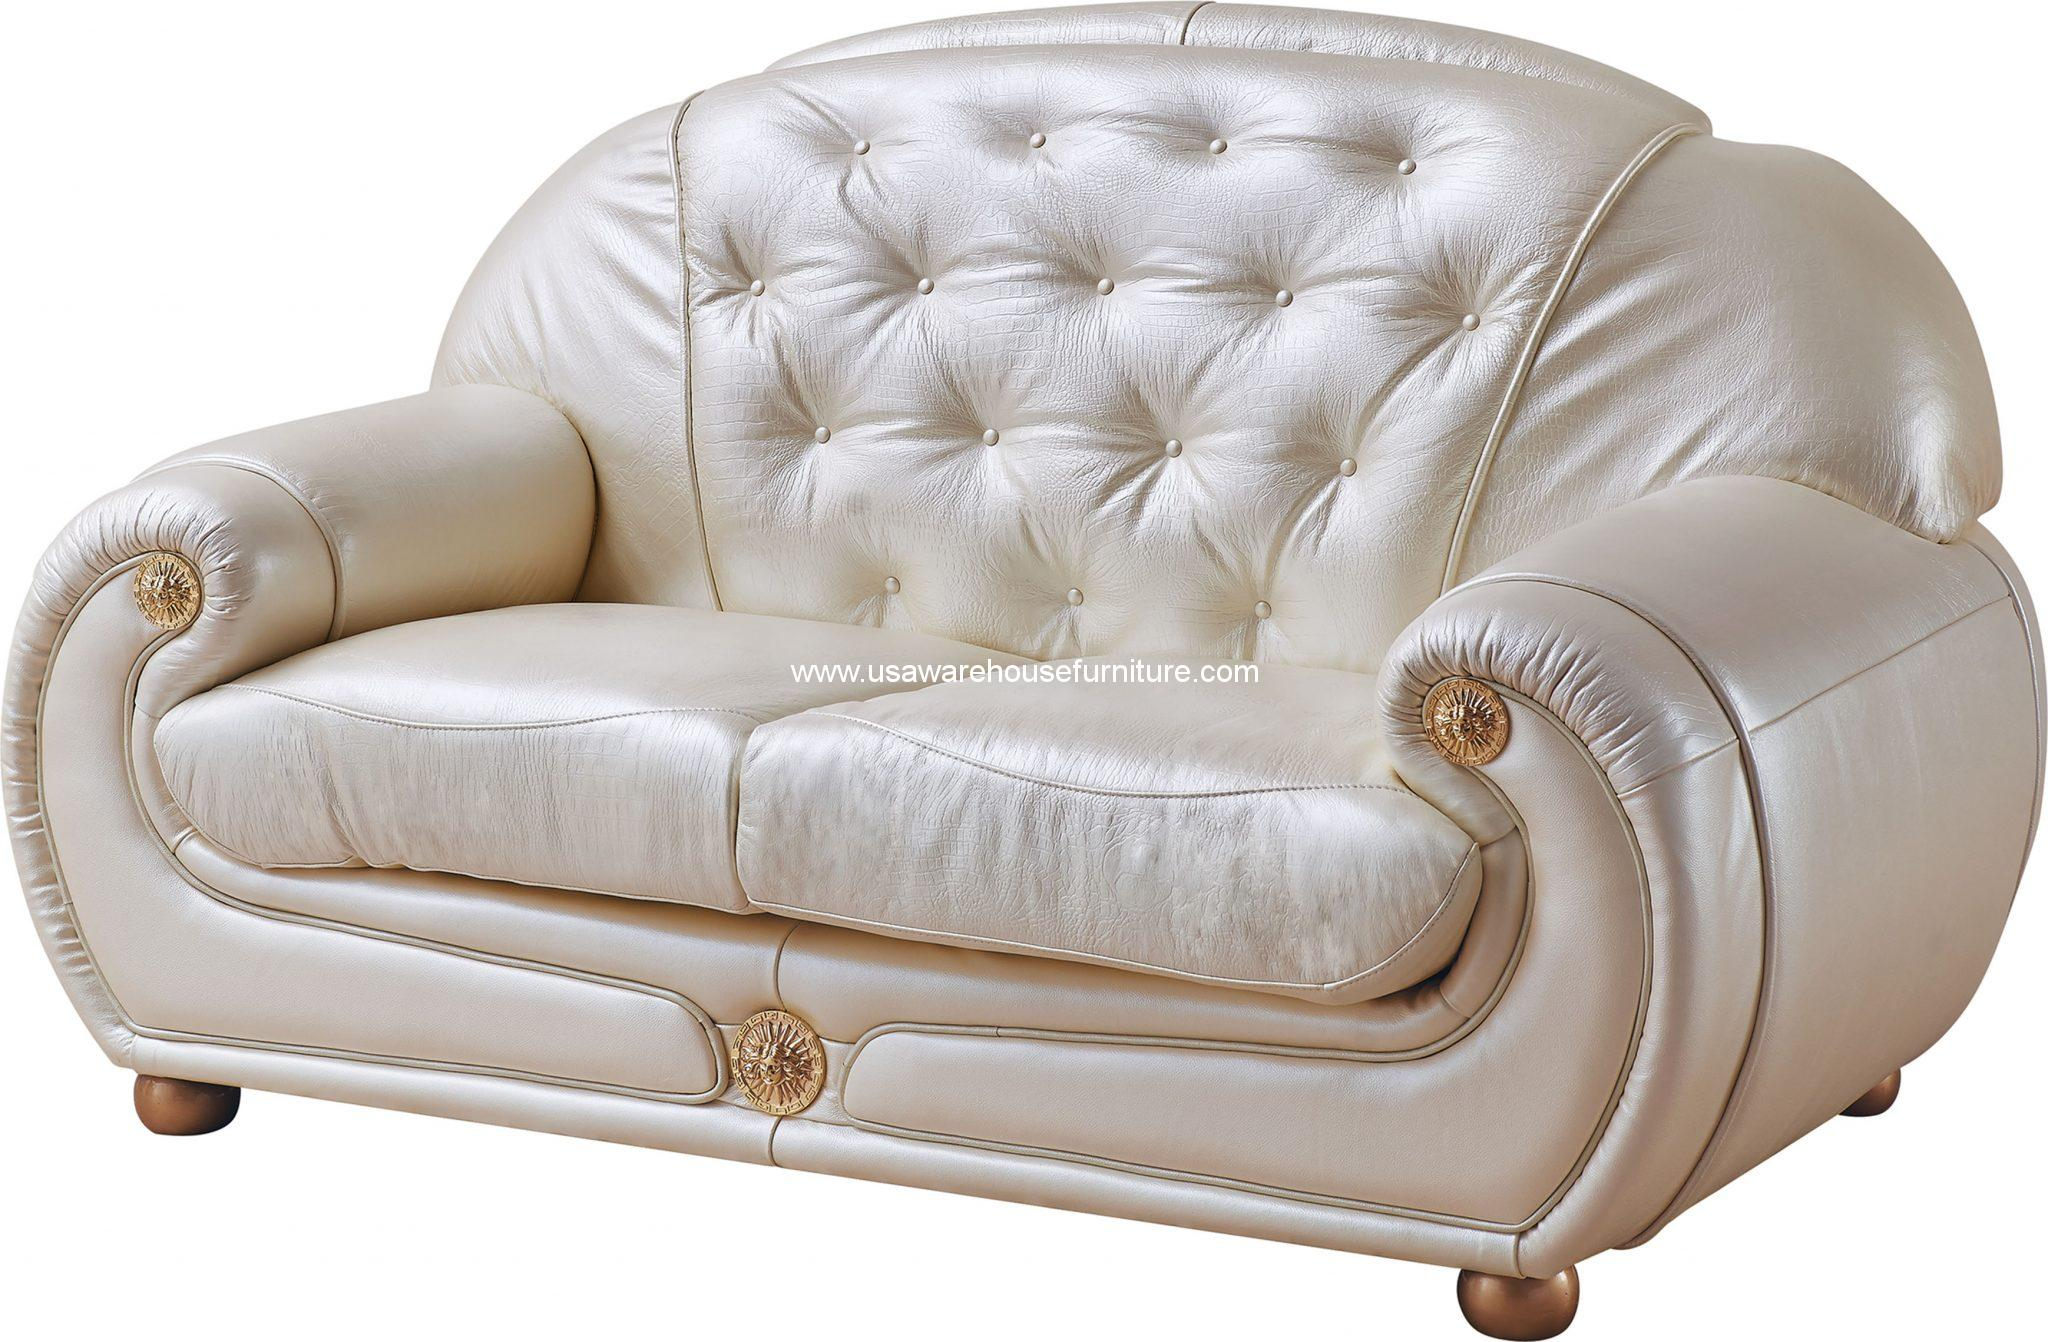 Esf Furniture Giza Full Italian Leather Loveseat Usa Warehouse Furniture